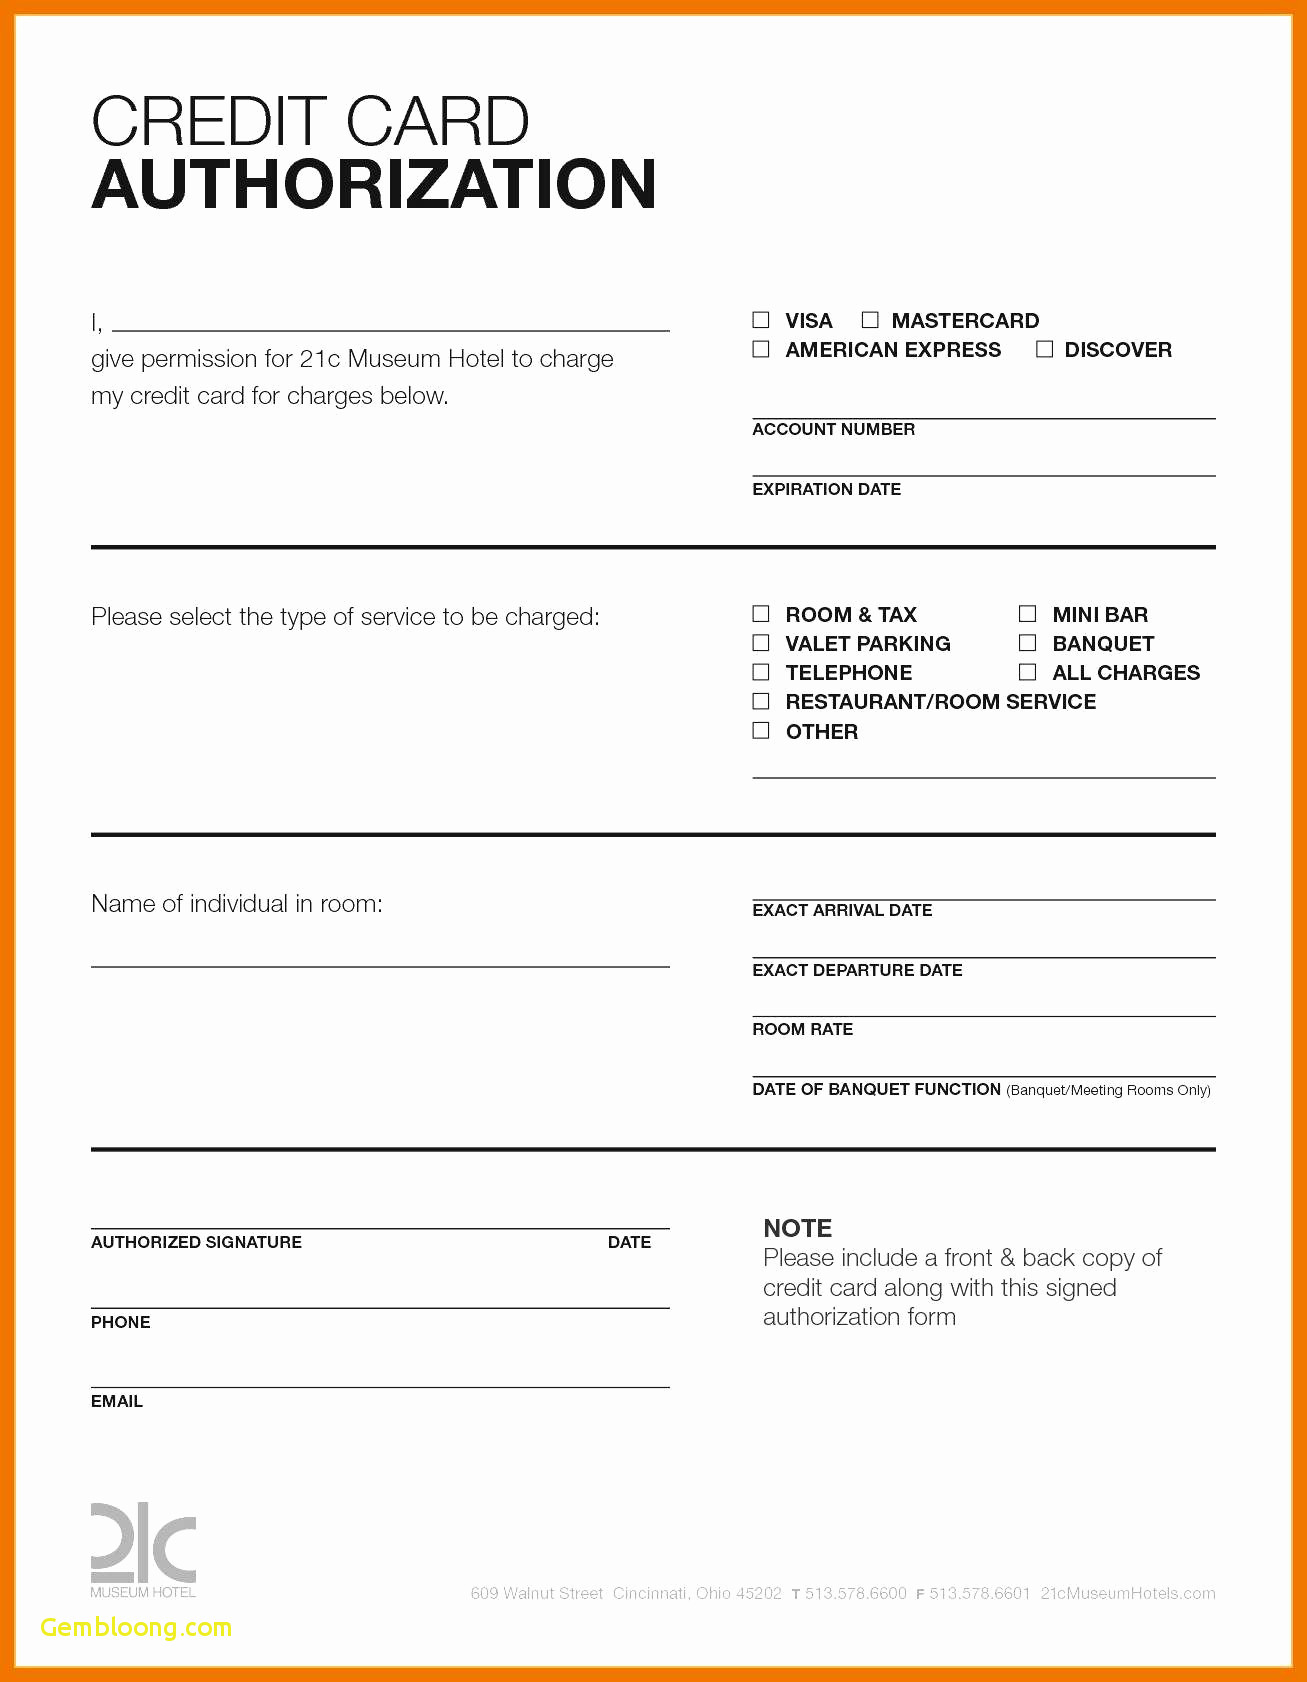 Hotel Credit Card Authorization Form Template Elegant Pertaining To Hotel Credit Card Authorization Form Template